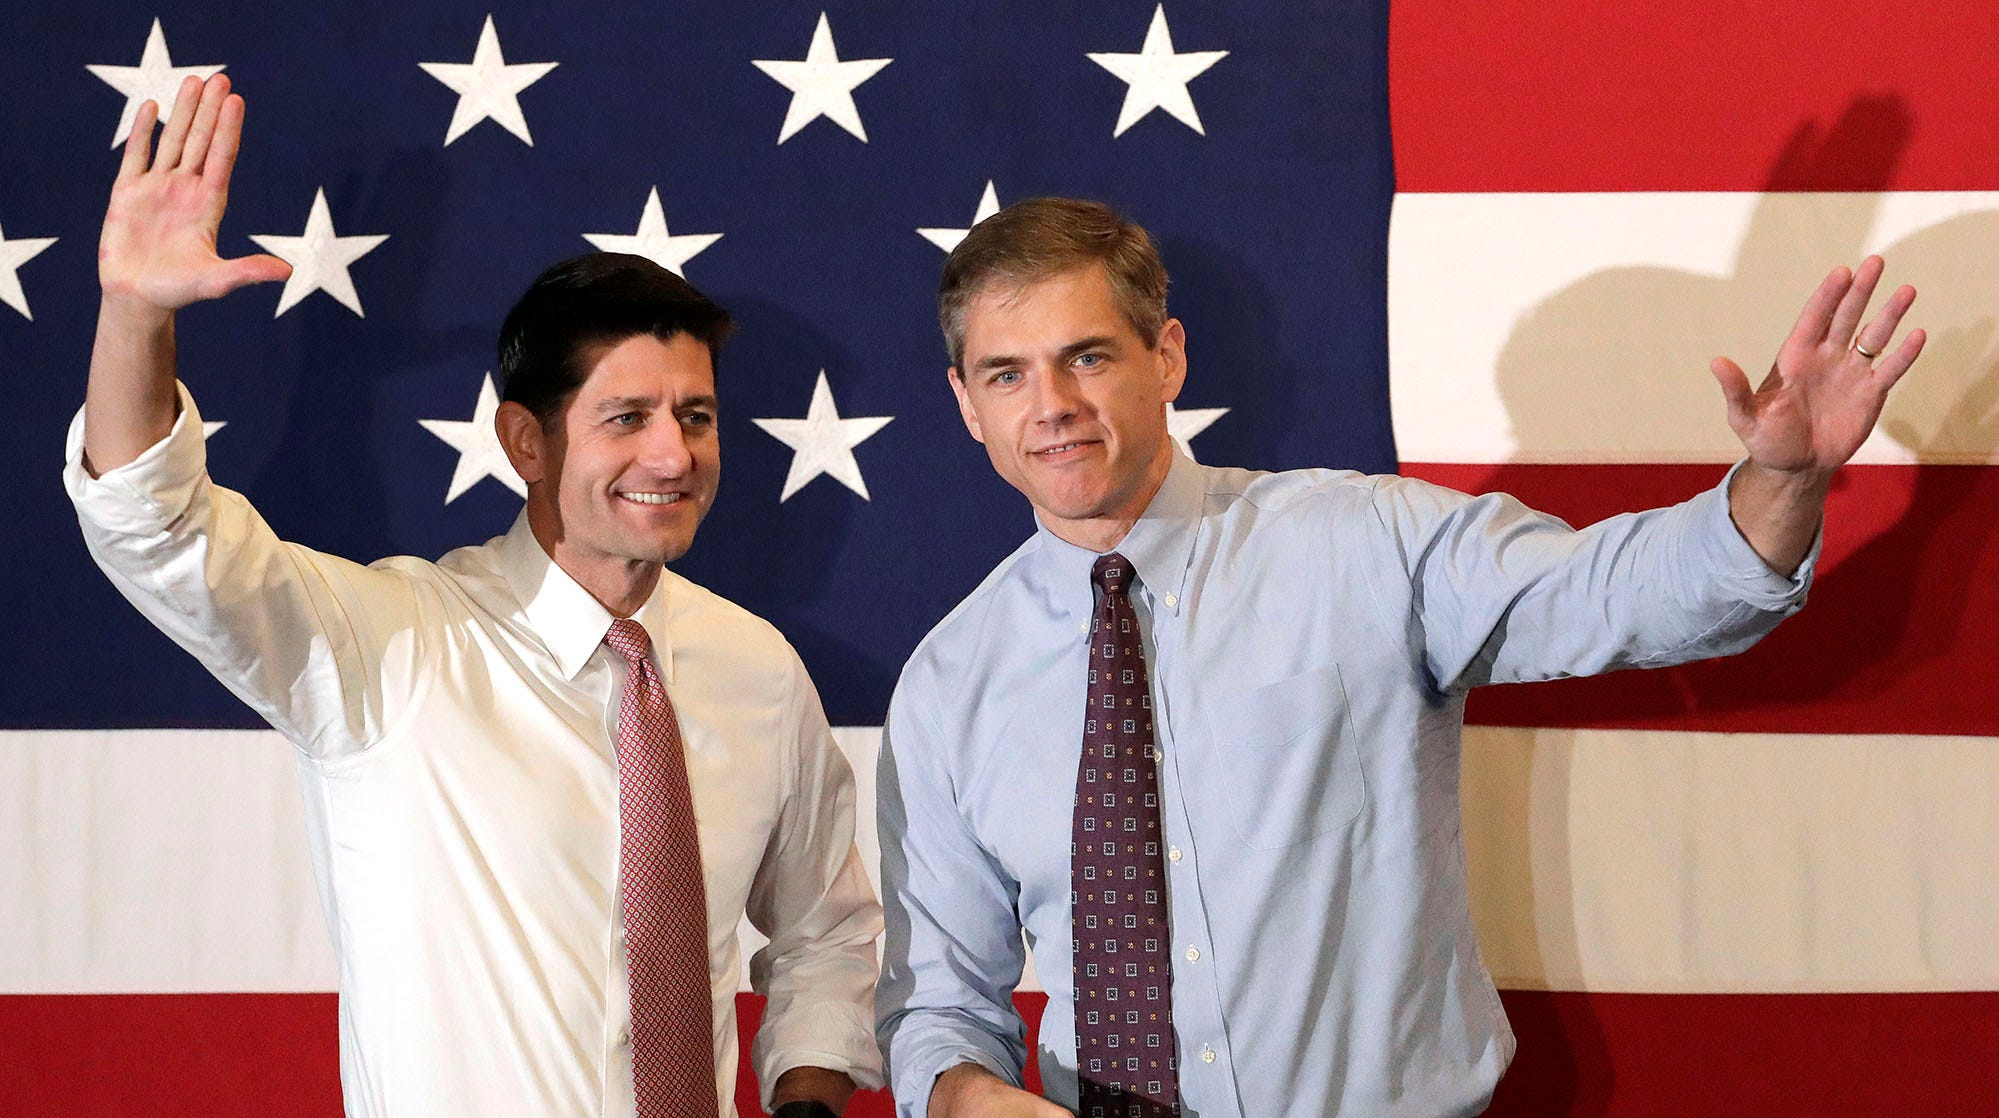 U.S. House Speaker Paul Ryan, left, and Jay Webber, Republican candidate for Congress in the 11th District of New Jersey, greet supporters during a campaign event, Wednesday, Oct. 17, 2018, in Hanover, N.J. (AP Photo/Julio Cortez)